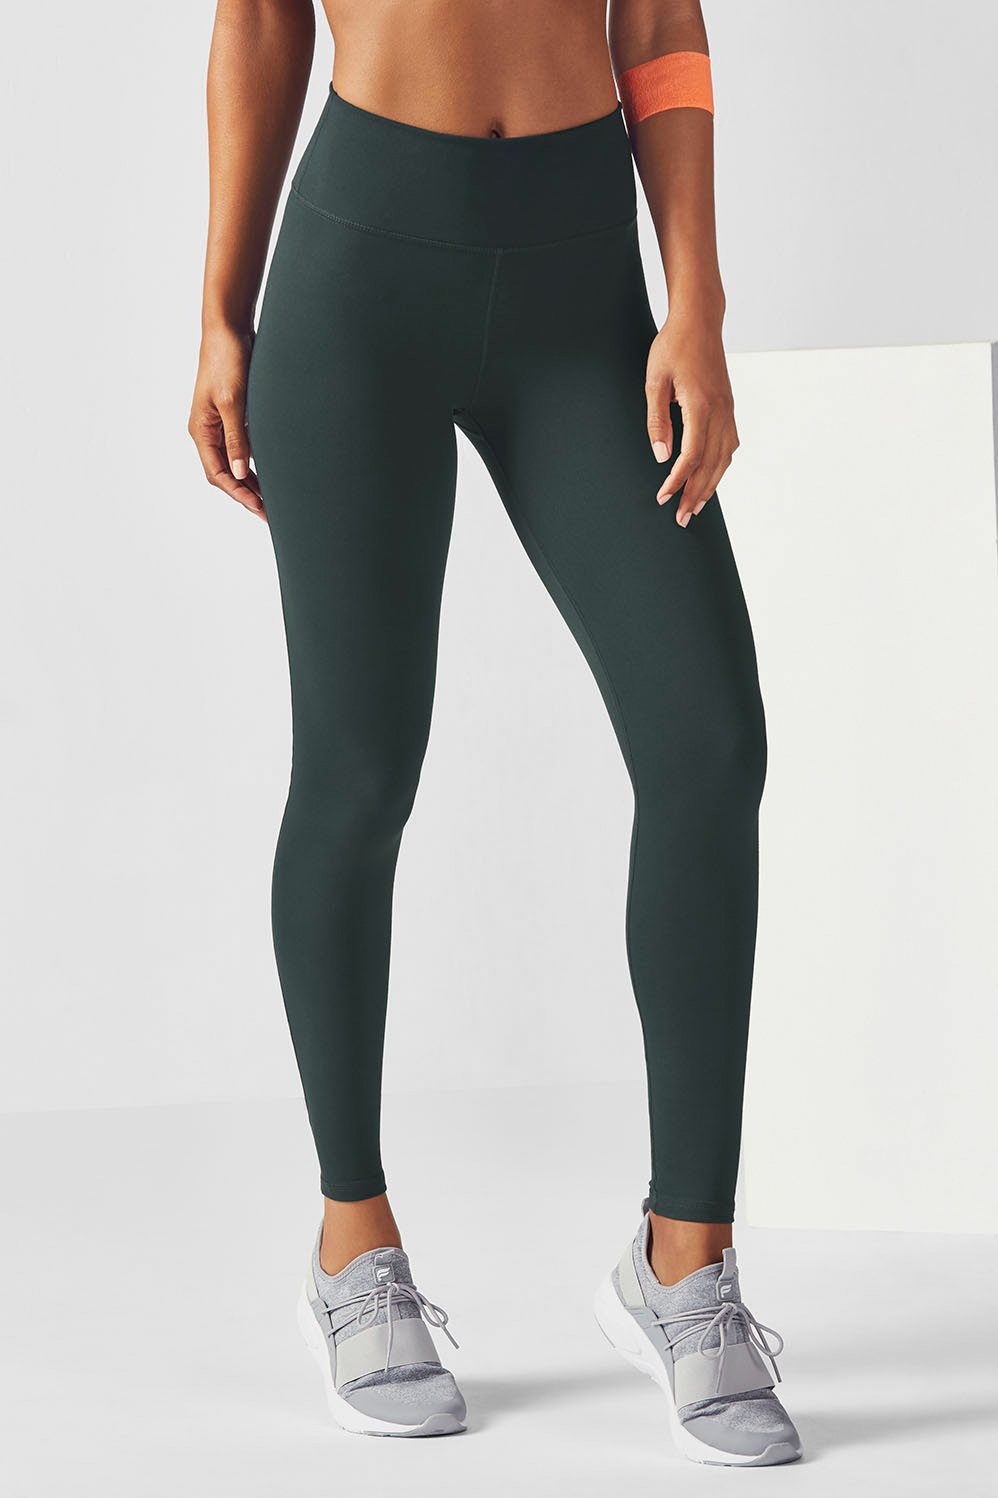 0593f21a5a897 High-Waisted Solid PowerHold® Legging - Evergreen